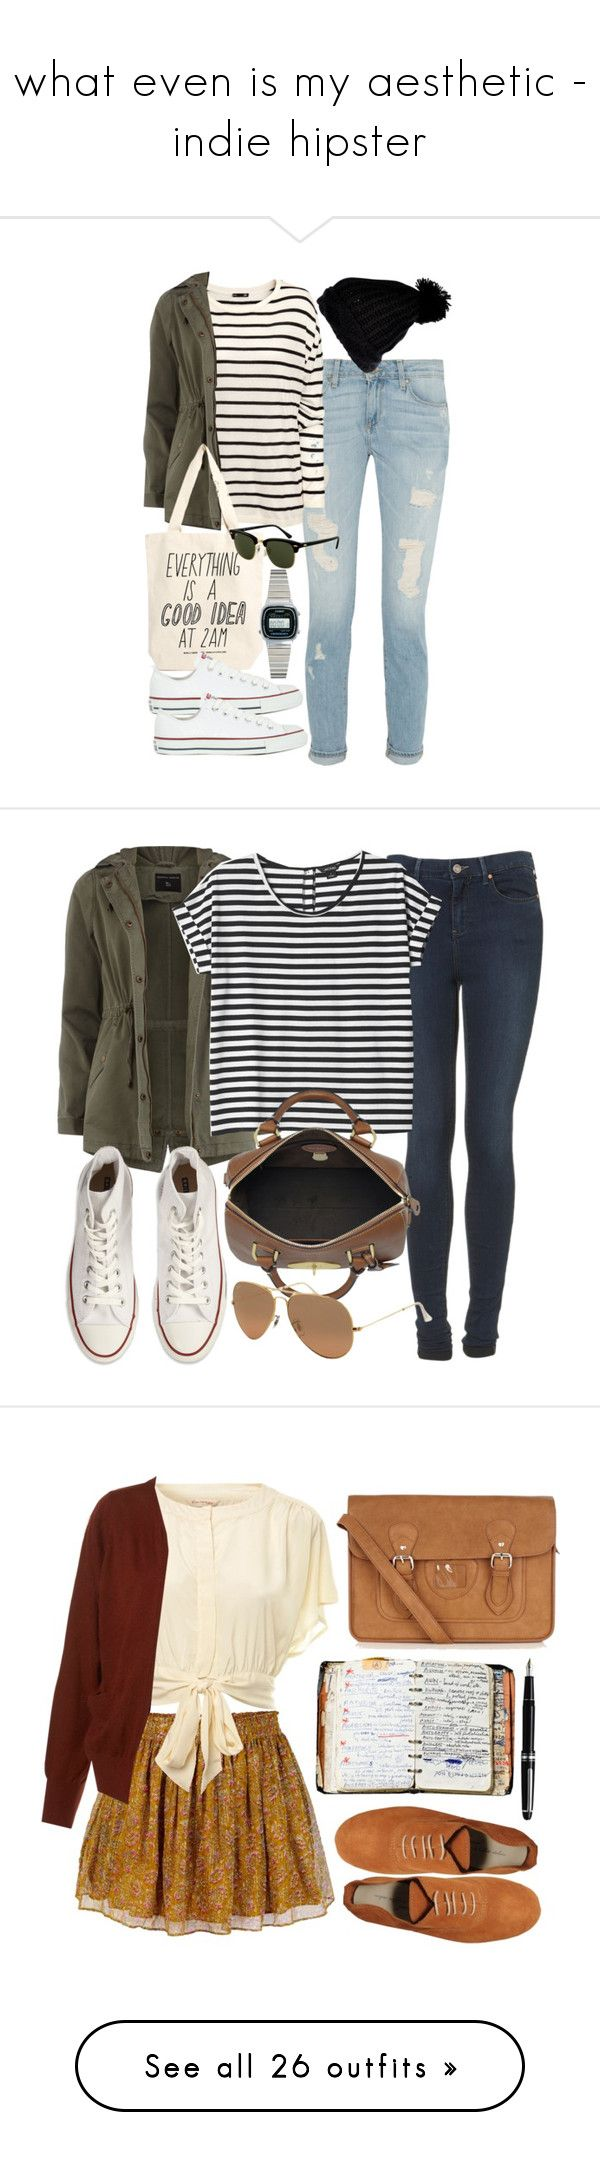 """""""what even is my aesthetic - indie hipster"""" by starrydancer ❤ liked on Polyvore featuring Paige Denim, H&M, Dorothy Perkins, River Island, Talented Totes, Converse, Rayban, Casio, Topshop and Monki"""